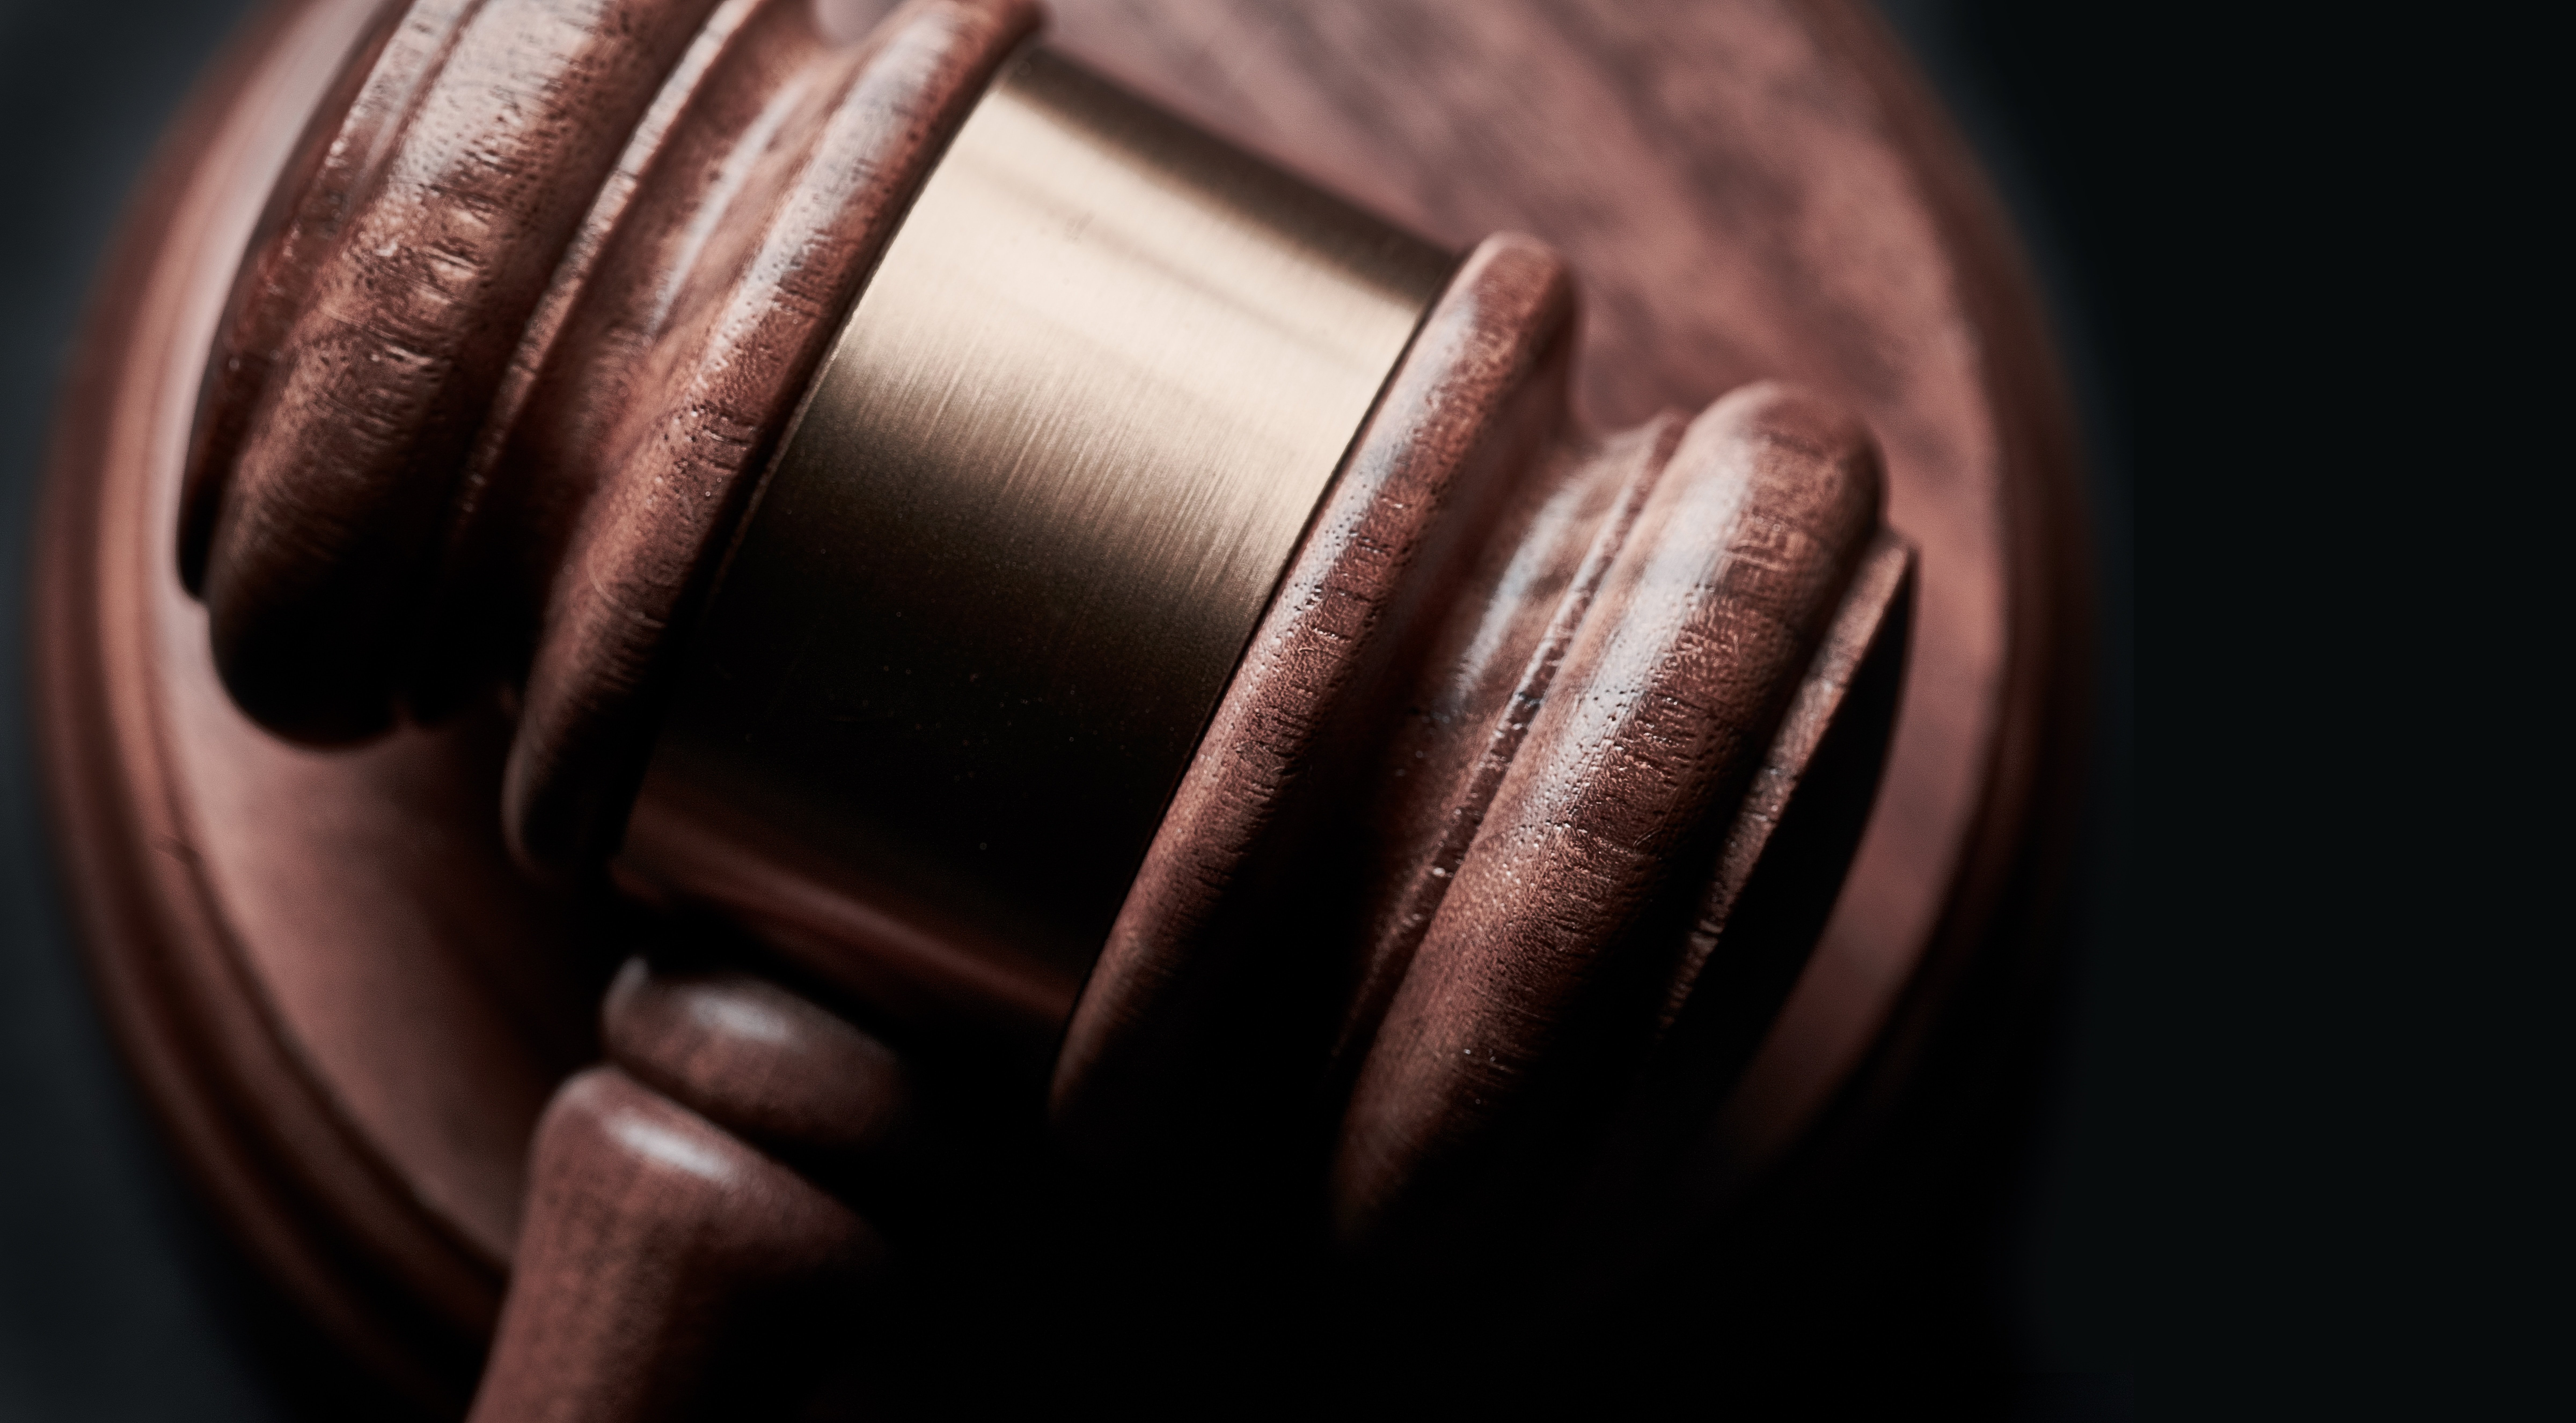 Data Protection And IT Asset Disposal: How To Comply With The Law